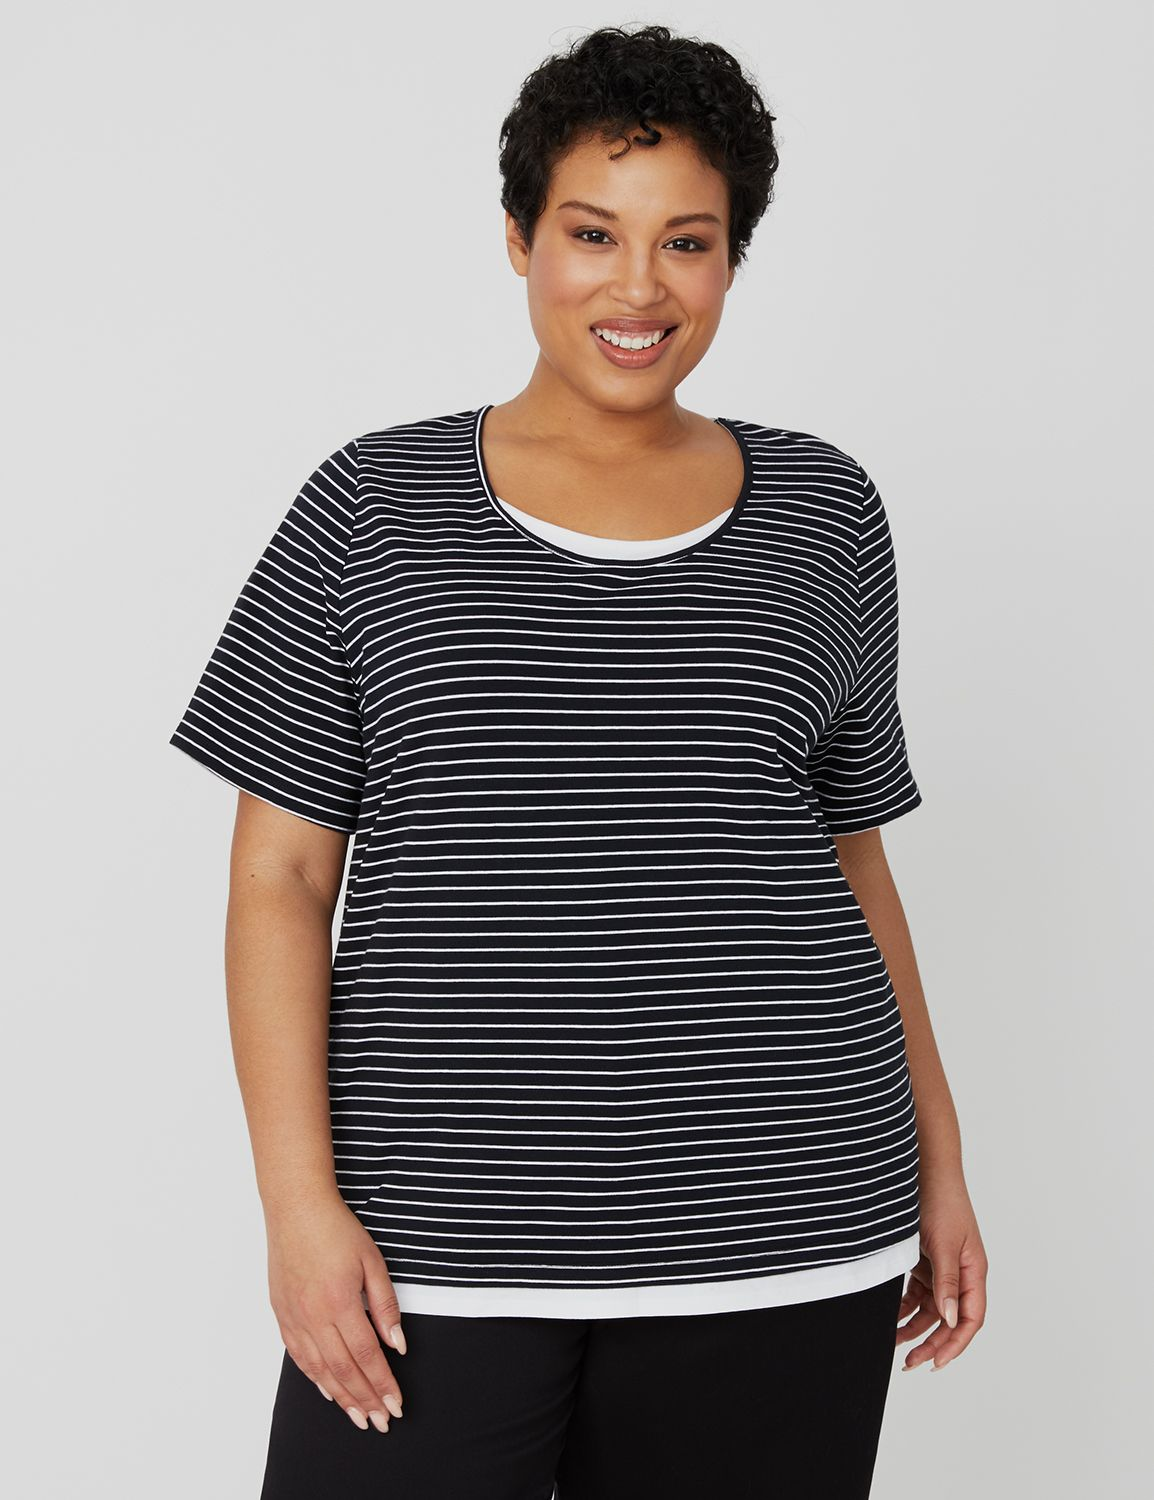 Suprema Duet Stripe Tee 1092768 SUPREMA SS- STRIPE 2FOR MP-300104392